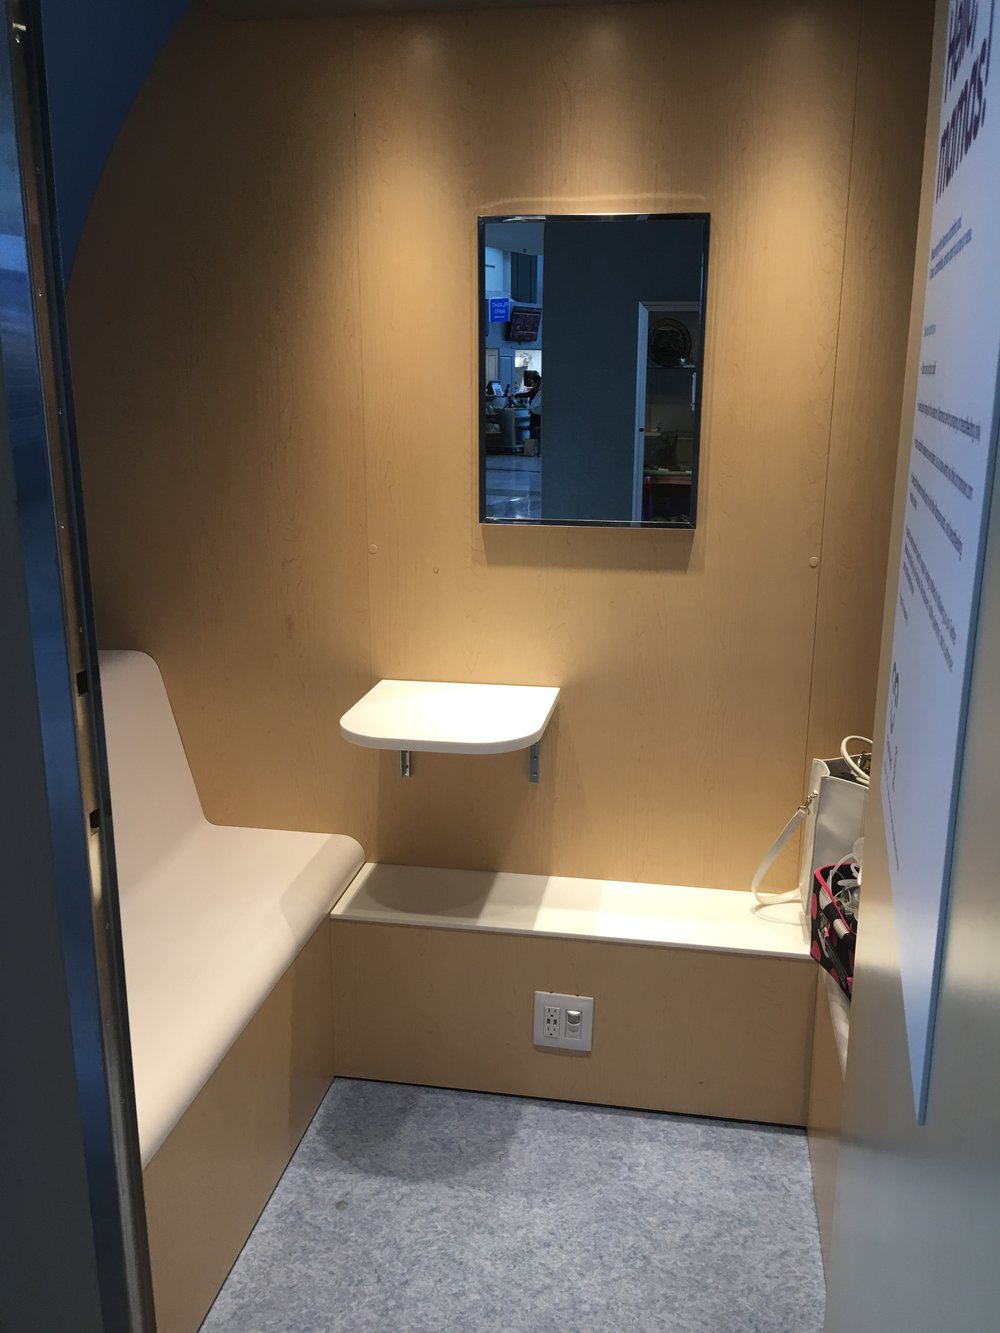 mamava pod at atlanta for breastfeeding, pumping tips